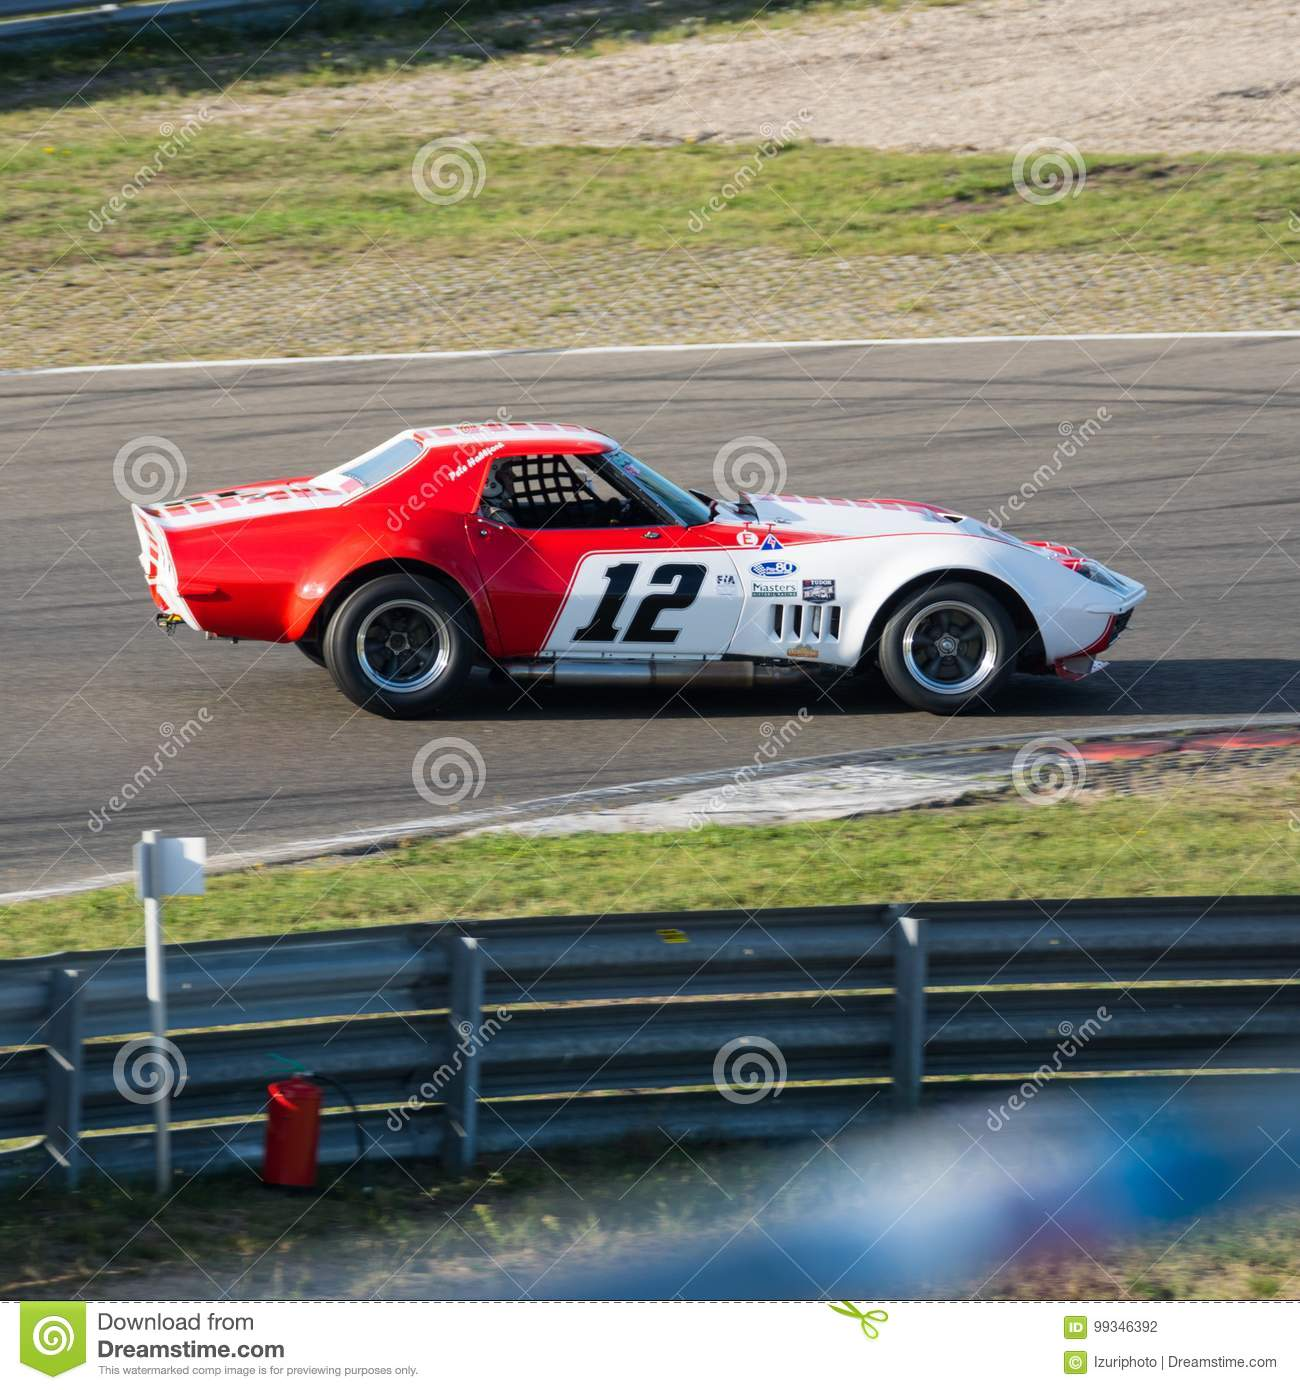 American classic race car number 12